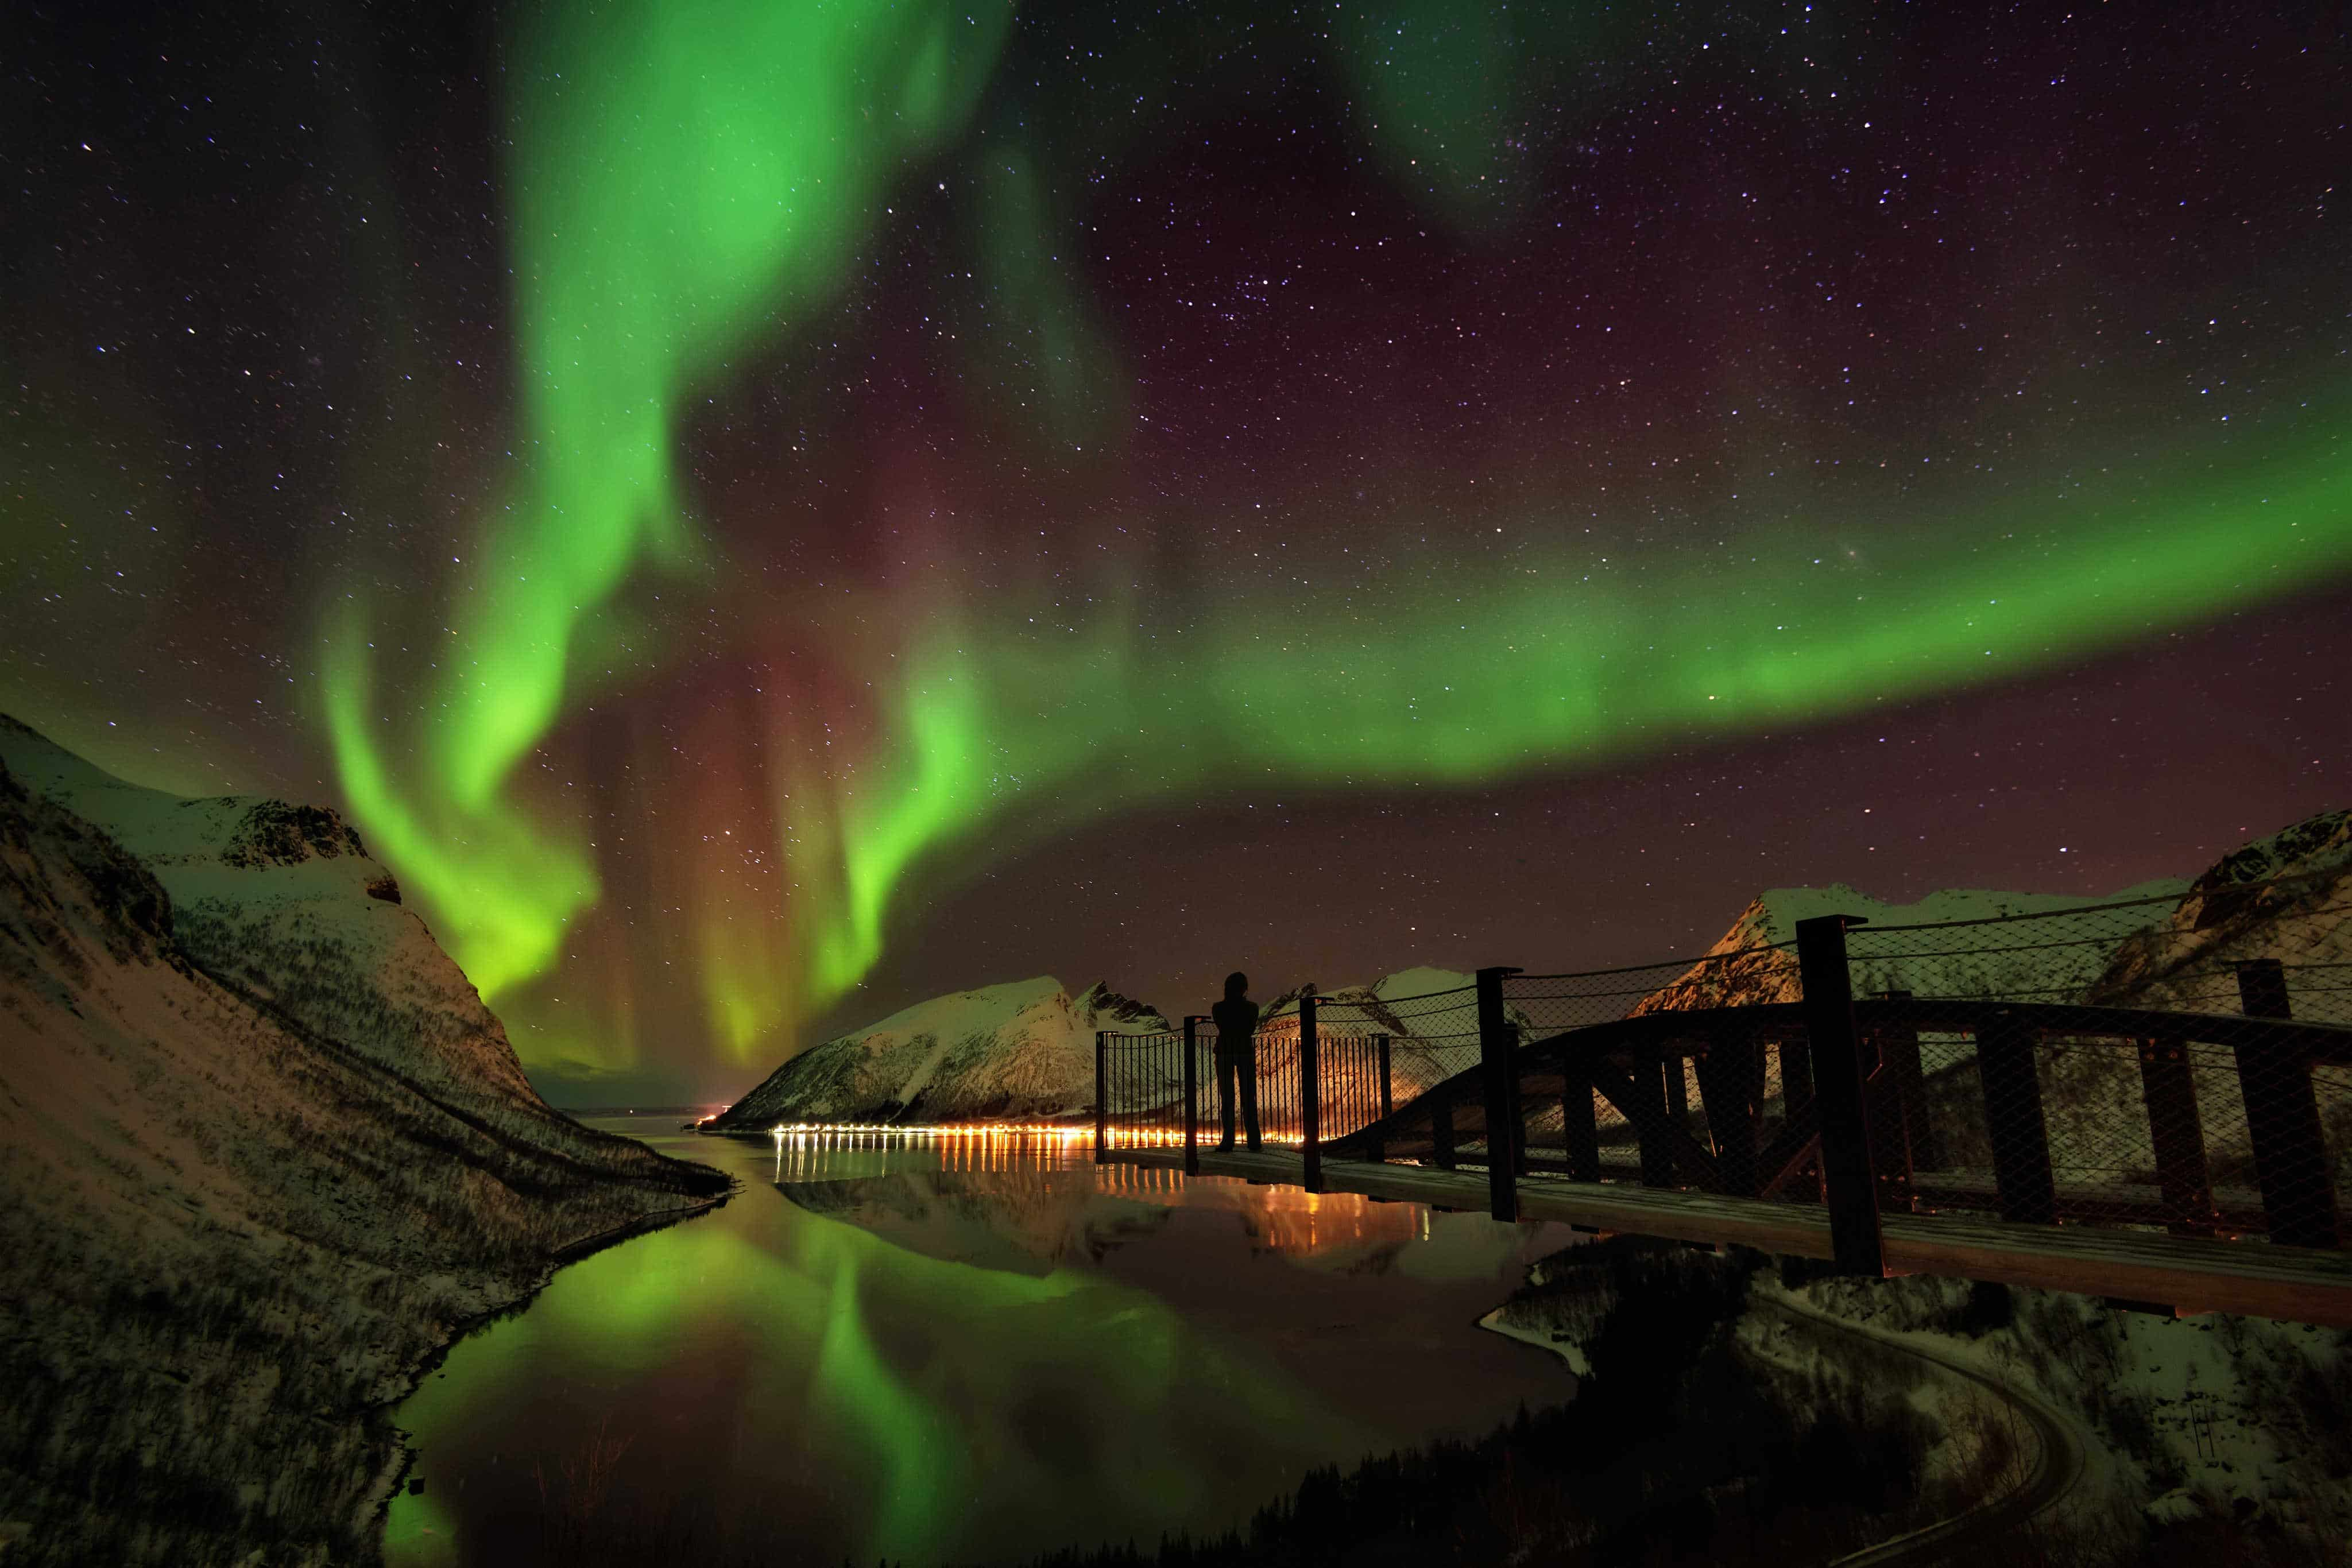 Top Tips for chasing the Northern Lights